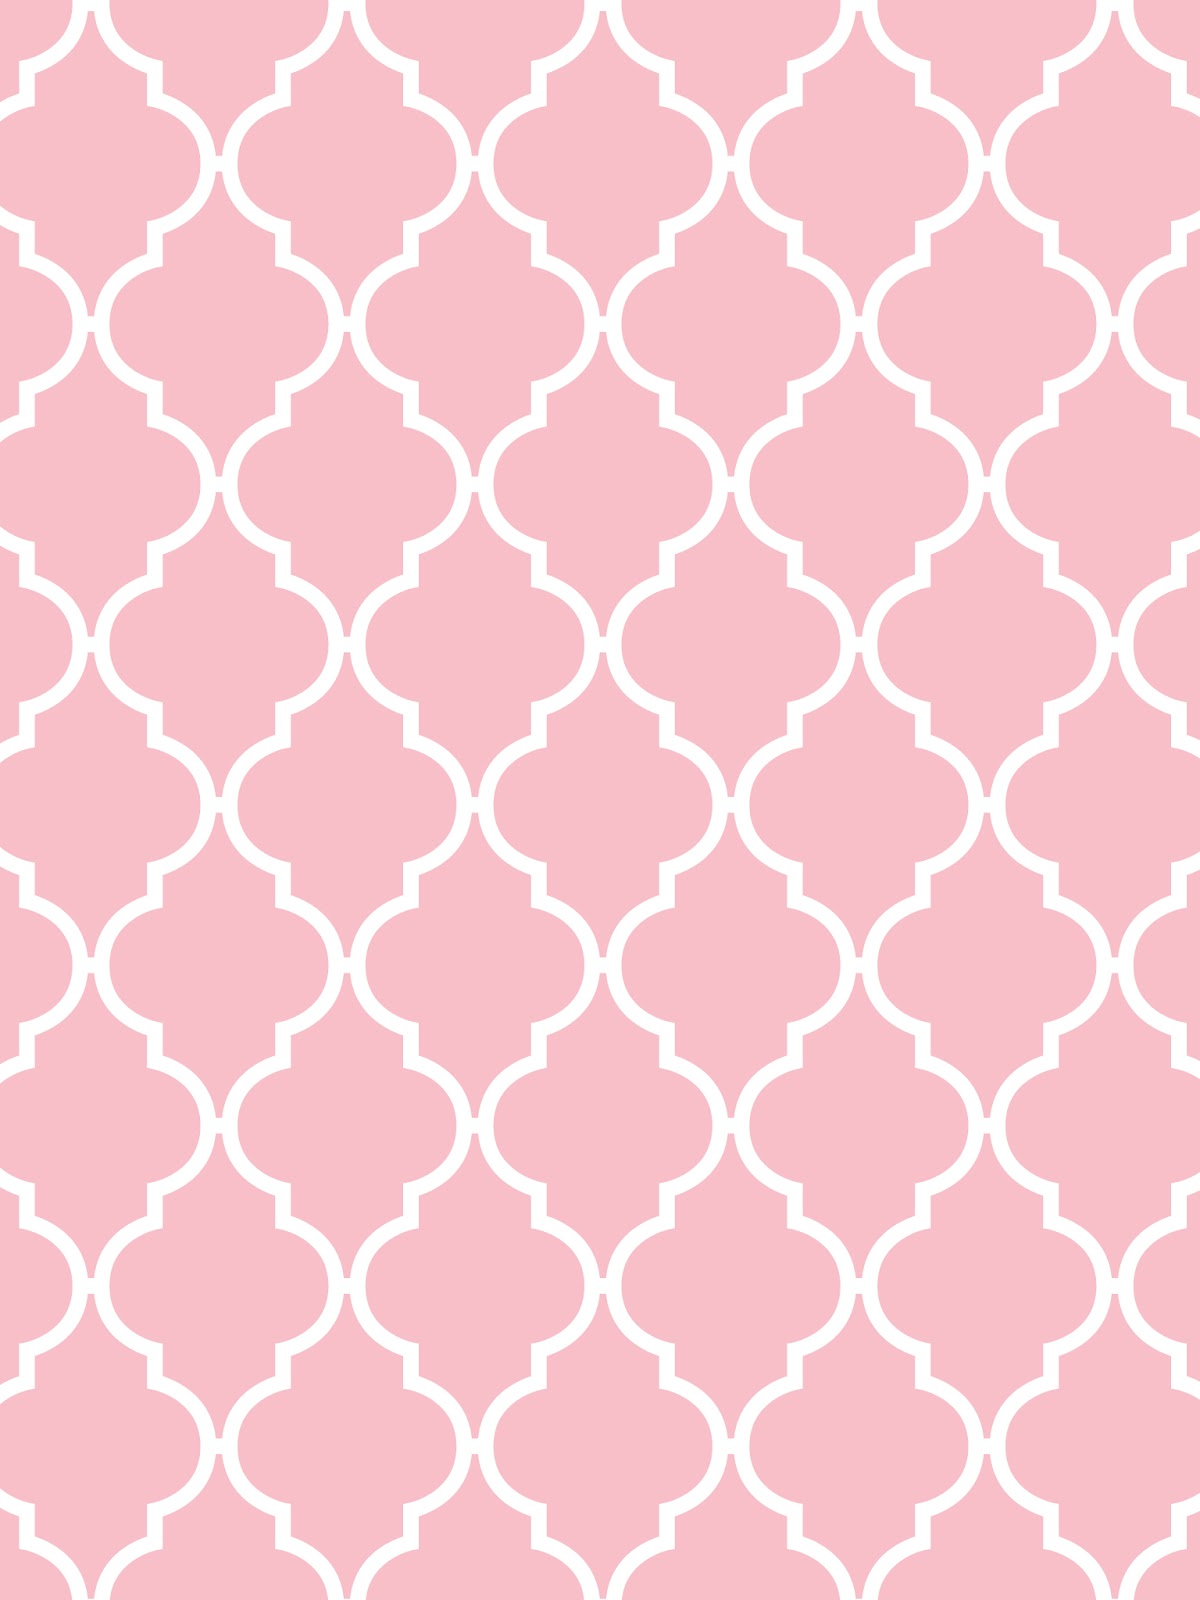 Quatrefoil Desktop Background